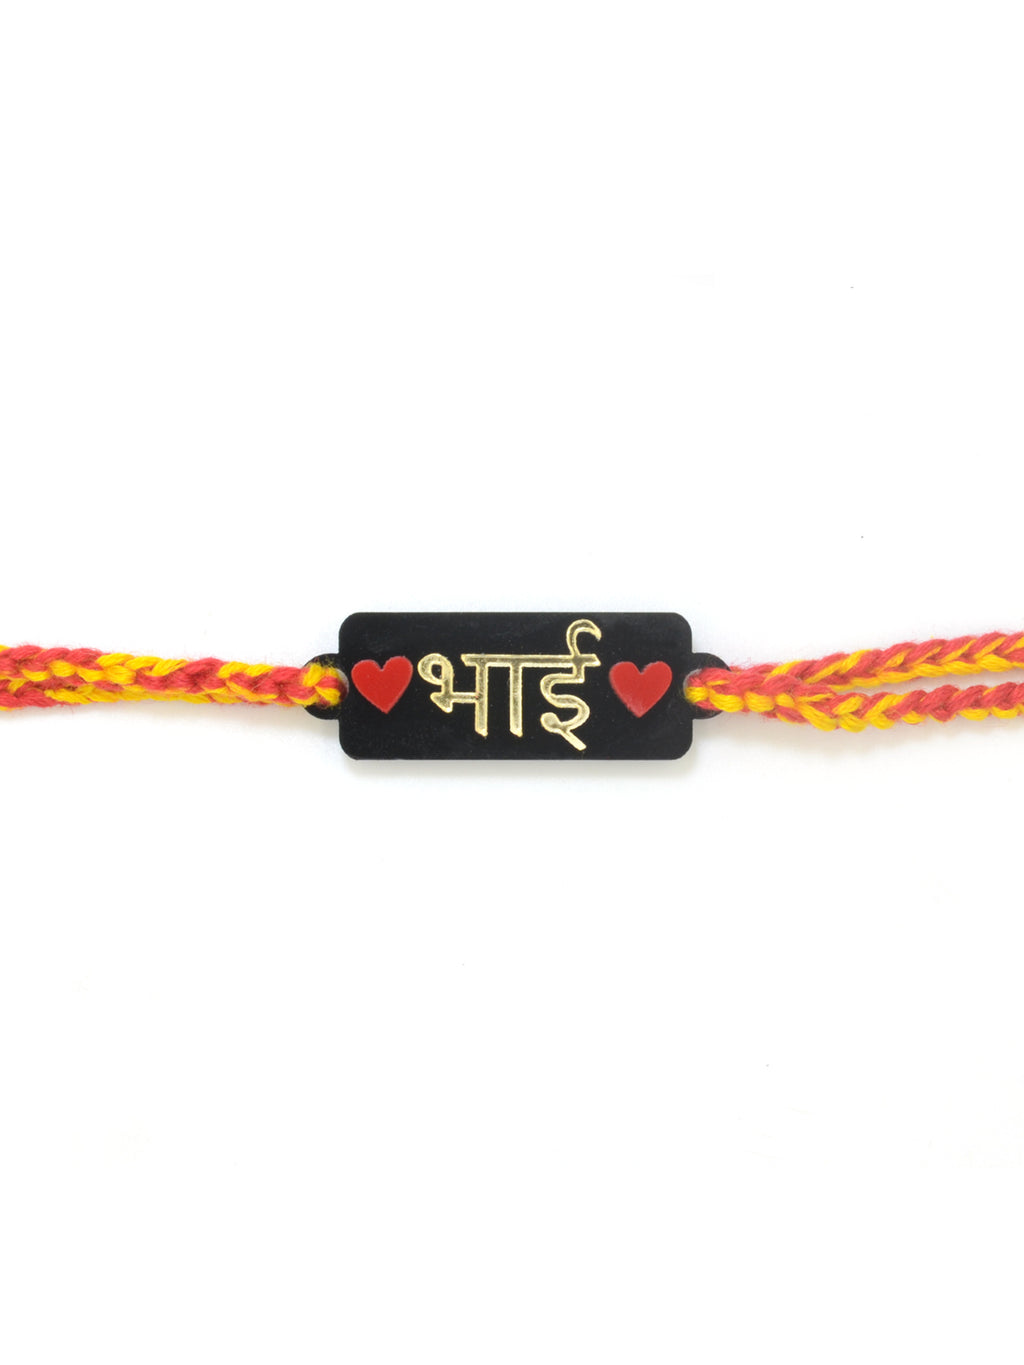 Bhai ❤️ Rakhi (Hindi)